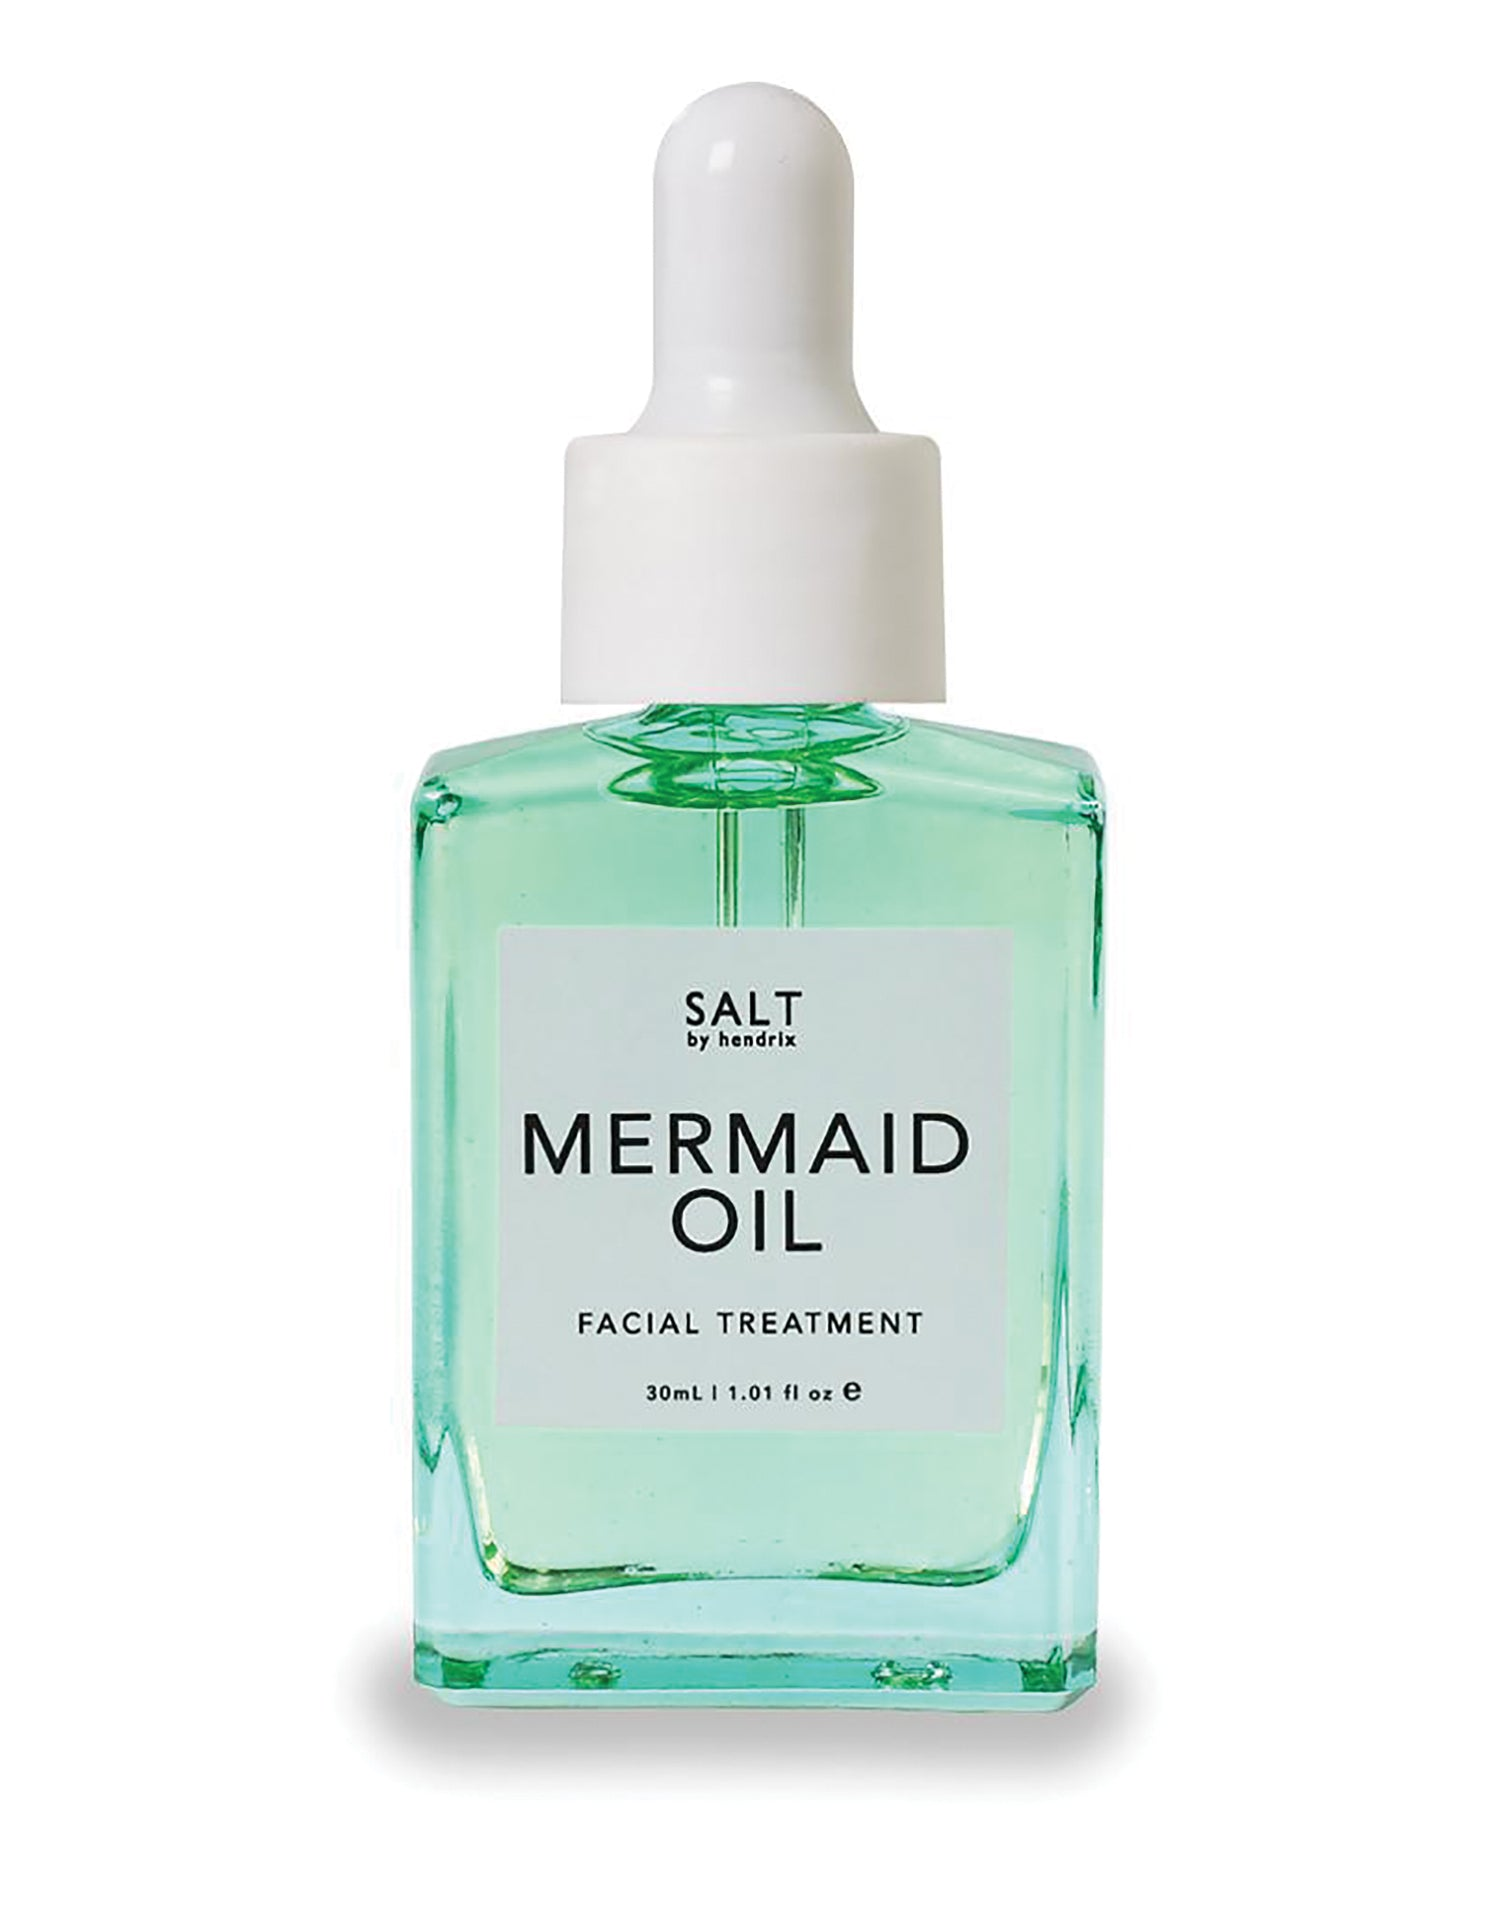 Salt by Hendrix's Mermaid Facial Oil - product view